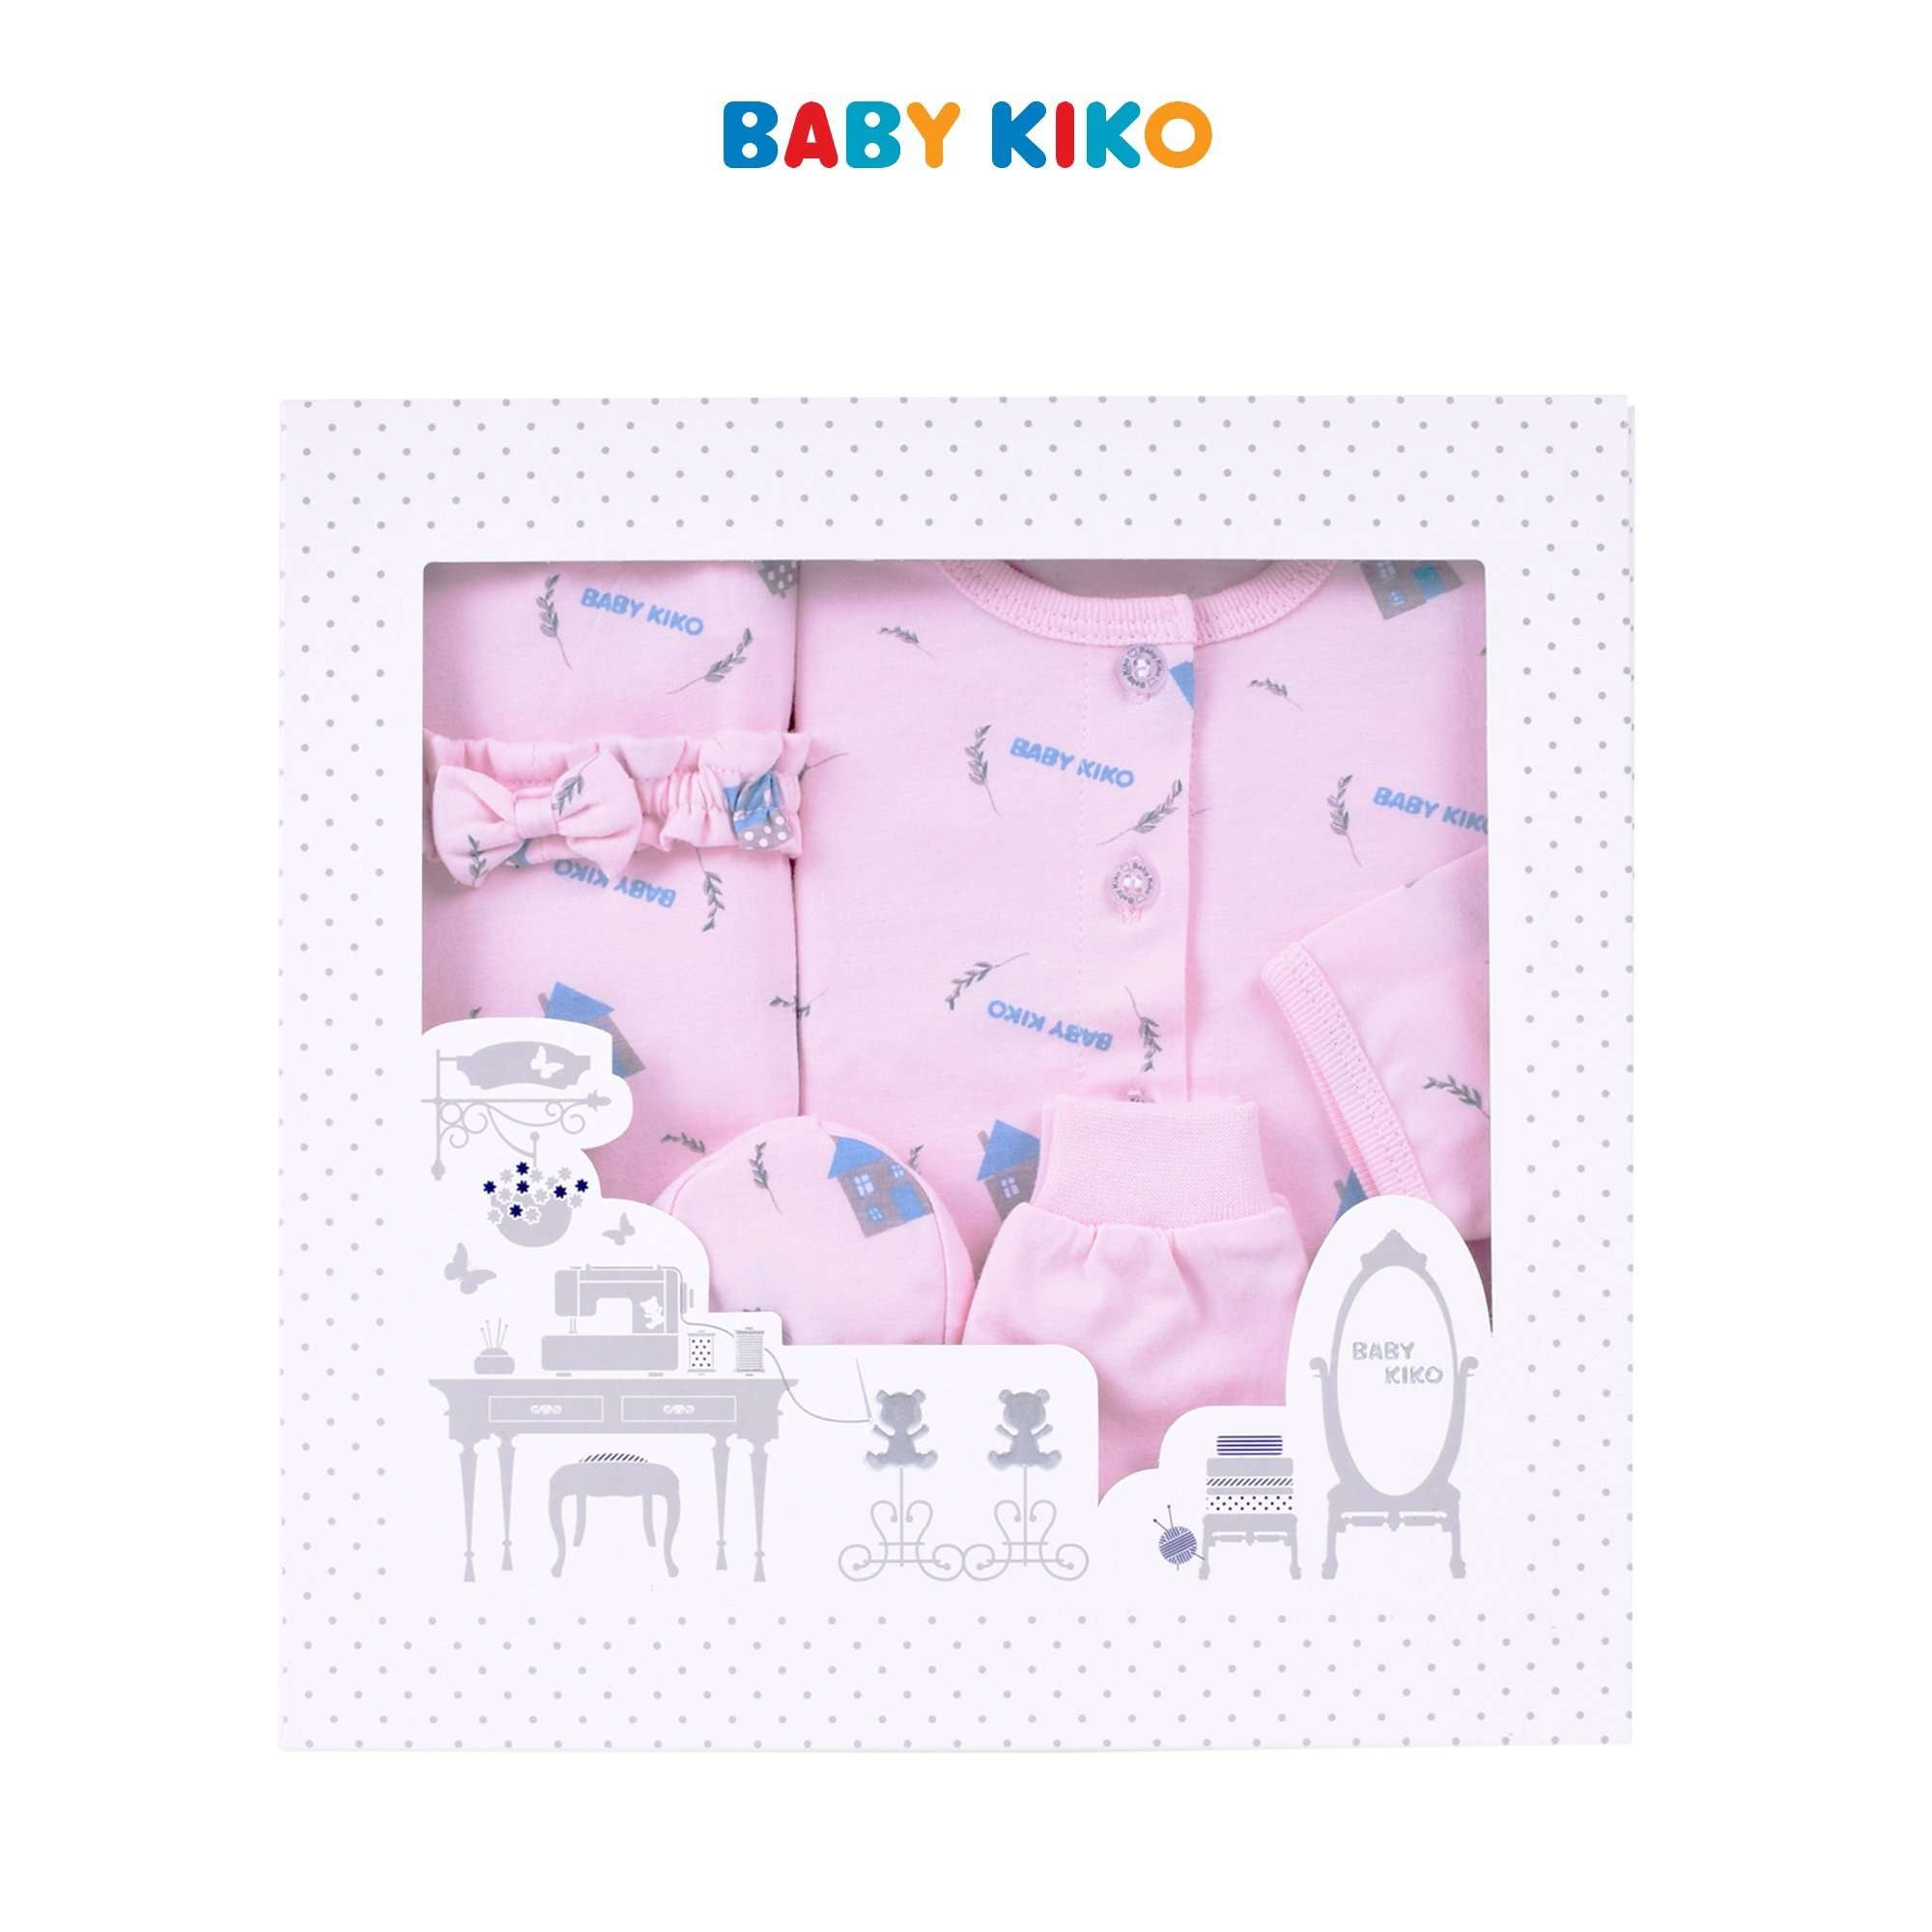 Baby KIKO Baby Girl Gift Set New Born - Light Pink B924106-6040-P1 : Buy Baby KIKO online at CMG.MY